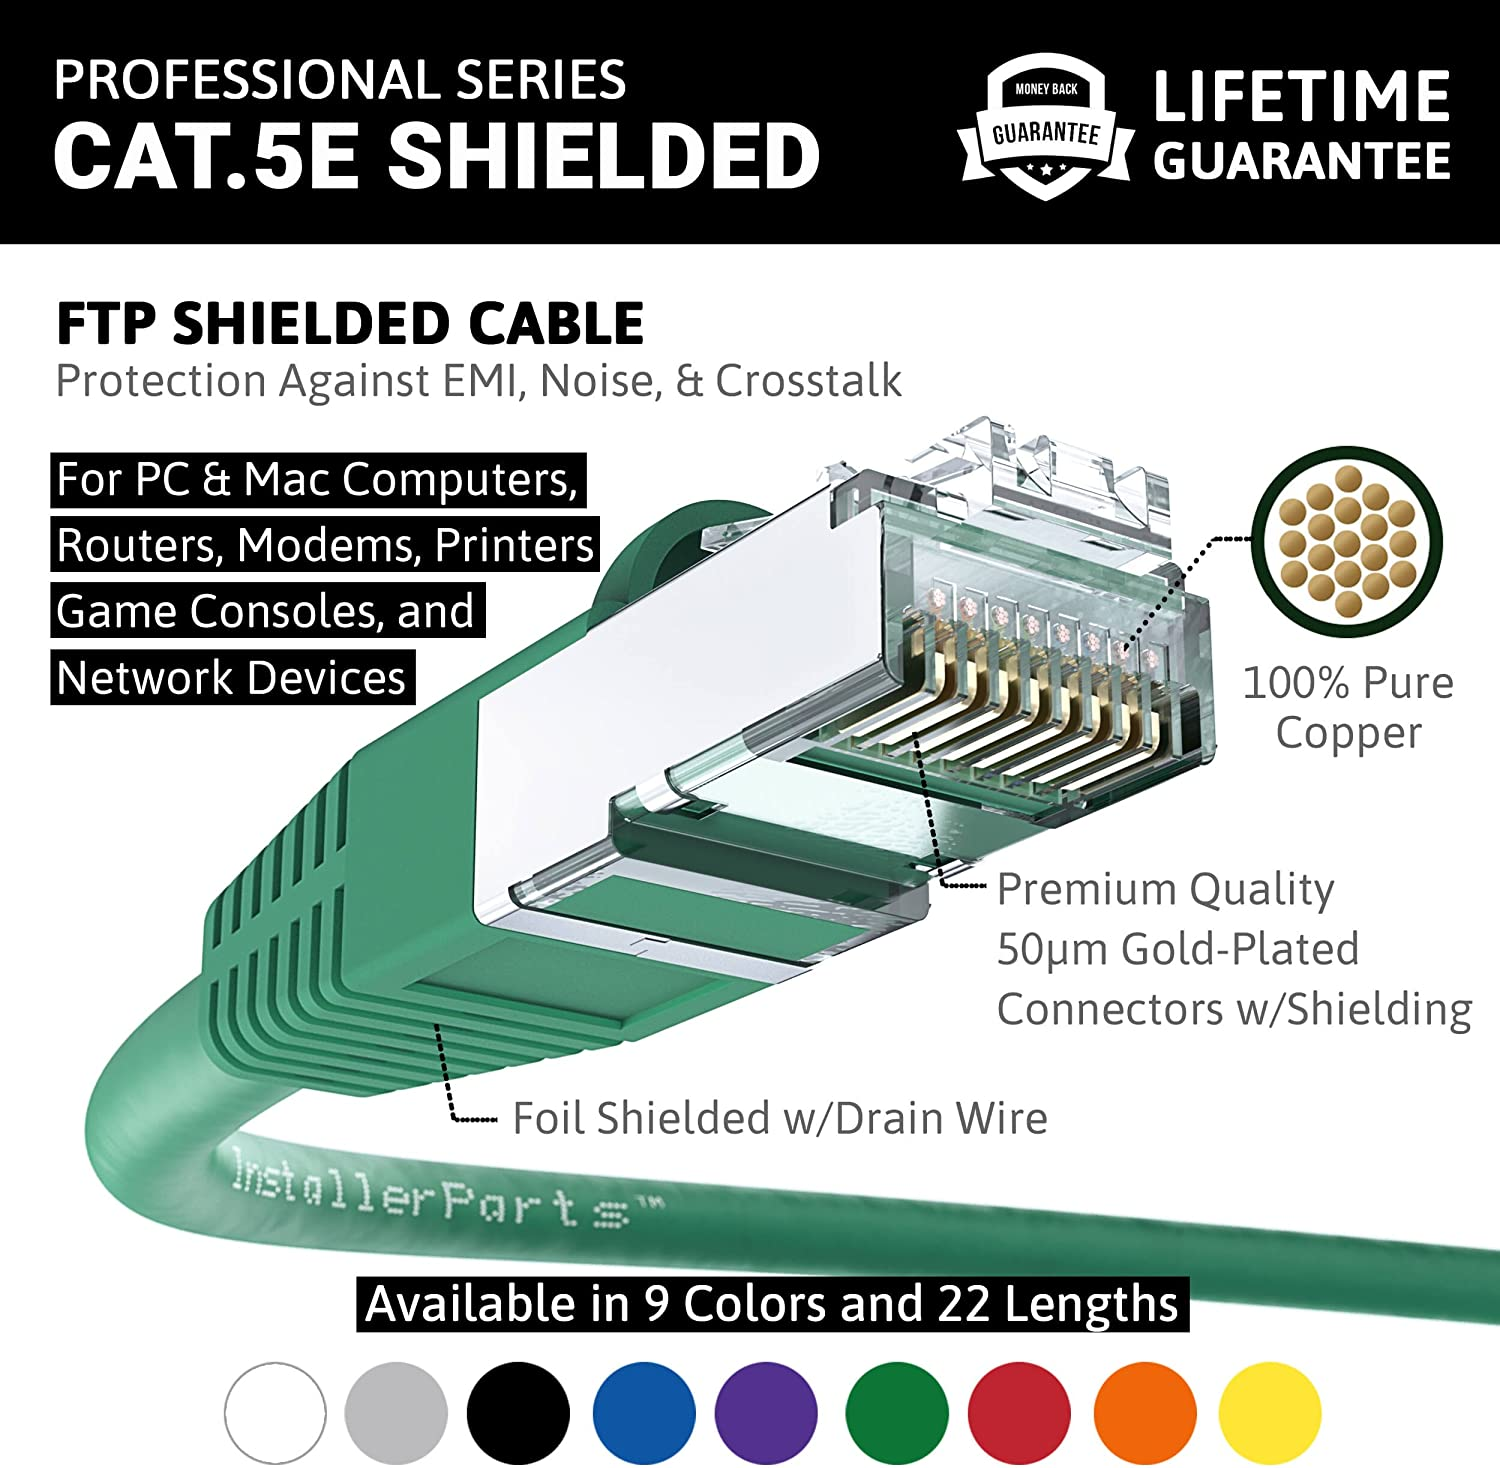 Black 350MHZ 1Gigabit//Sec Network//Internet Cable 5 Pack Ethernet Cable CAT5E Cable Shielded Booted 1 FT FTP InstallerParts Professional Series